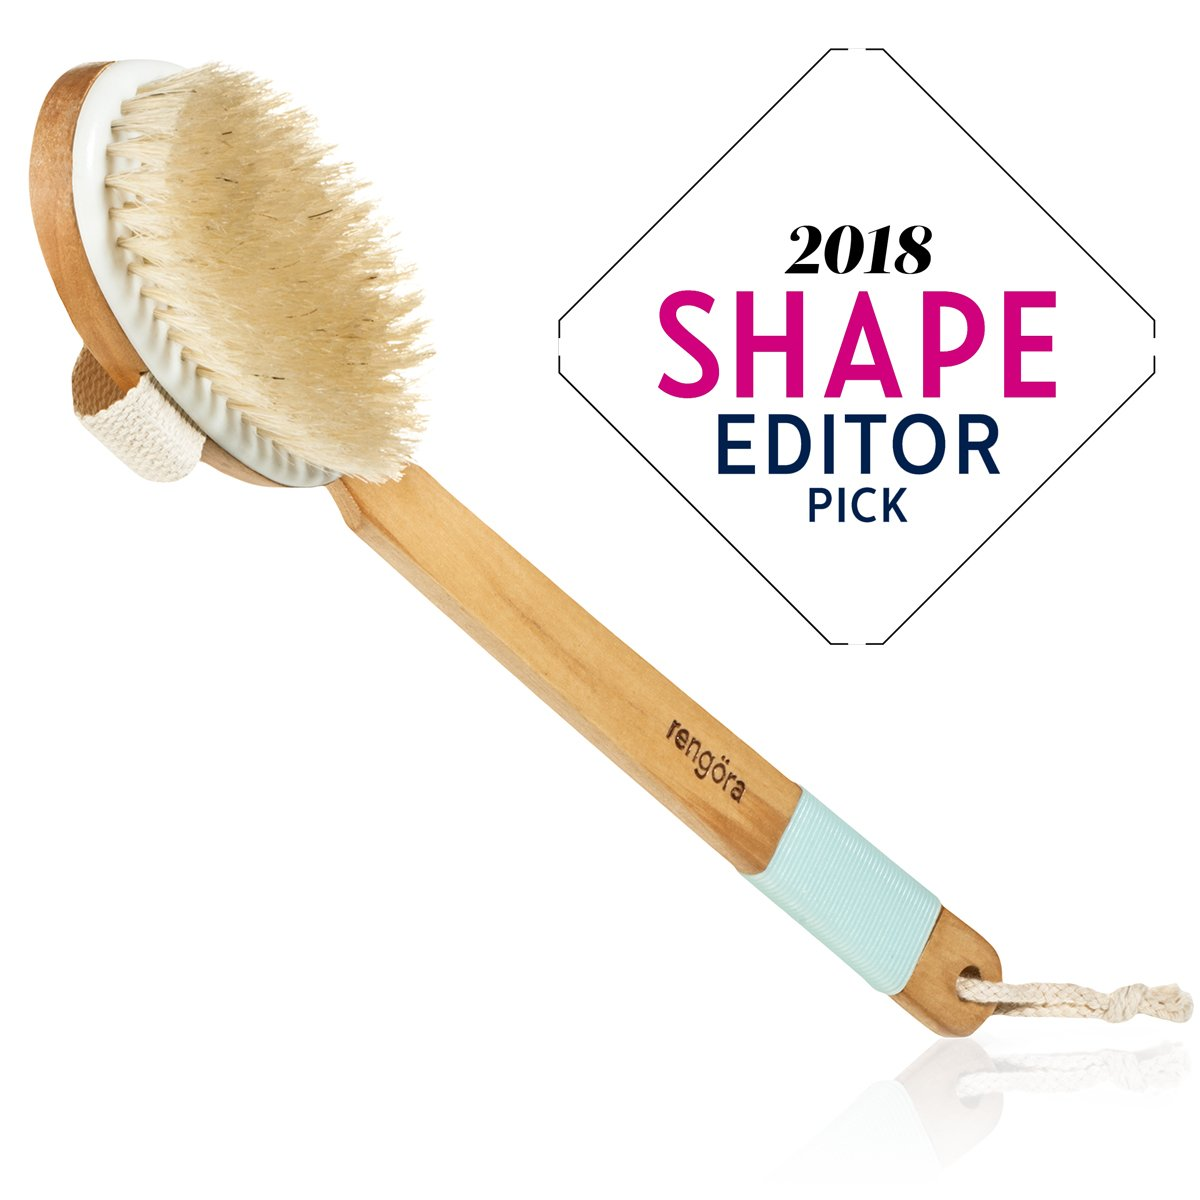 Dry Brushing Body Brush - Exfoliating Brush for Skin Care - Best for Massage, Dry Skin, Removing Dead Skin, Lymphatic Drainage, and Cellulite Treatment. Achieve Healthy Skin Today! rengöra